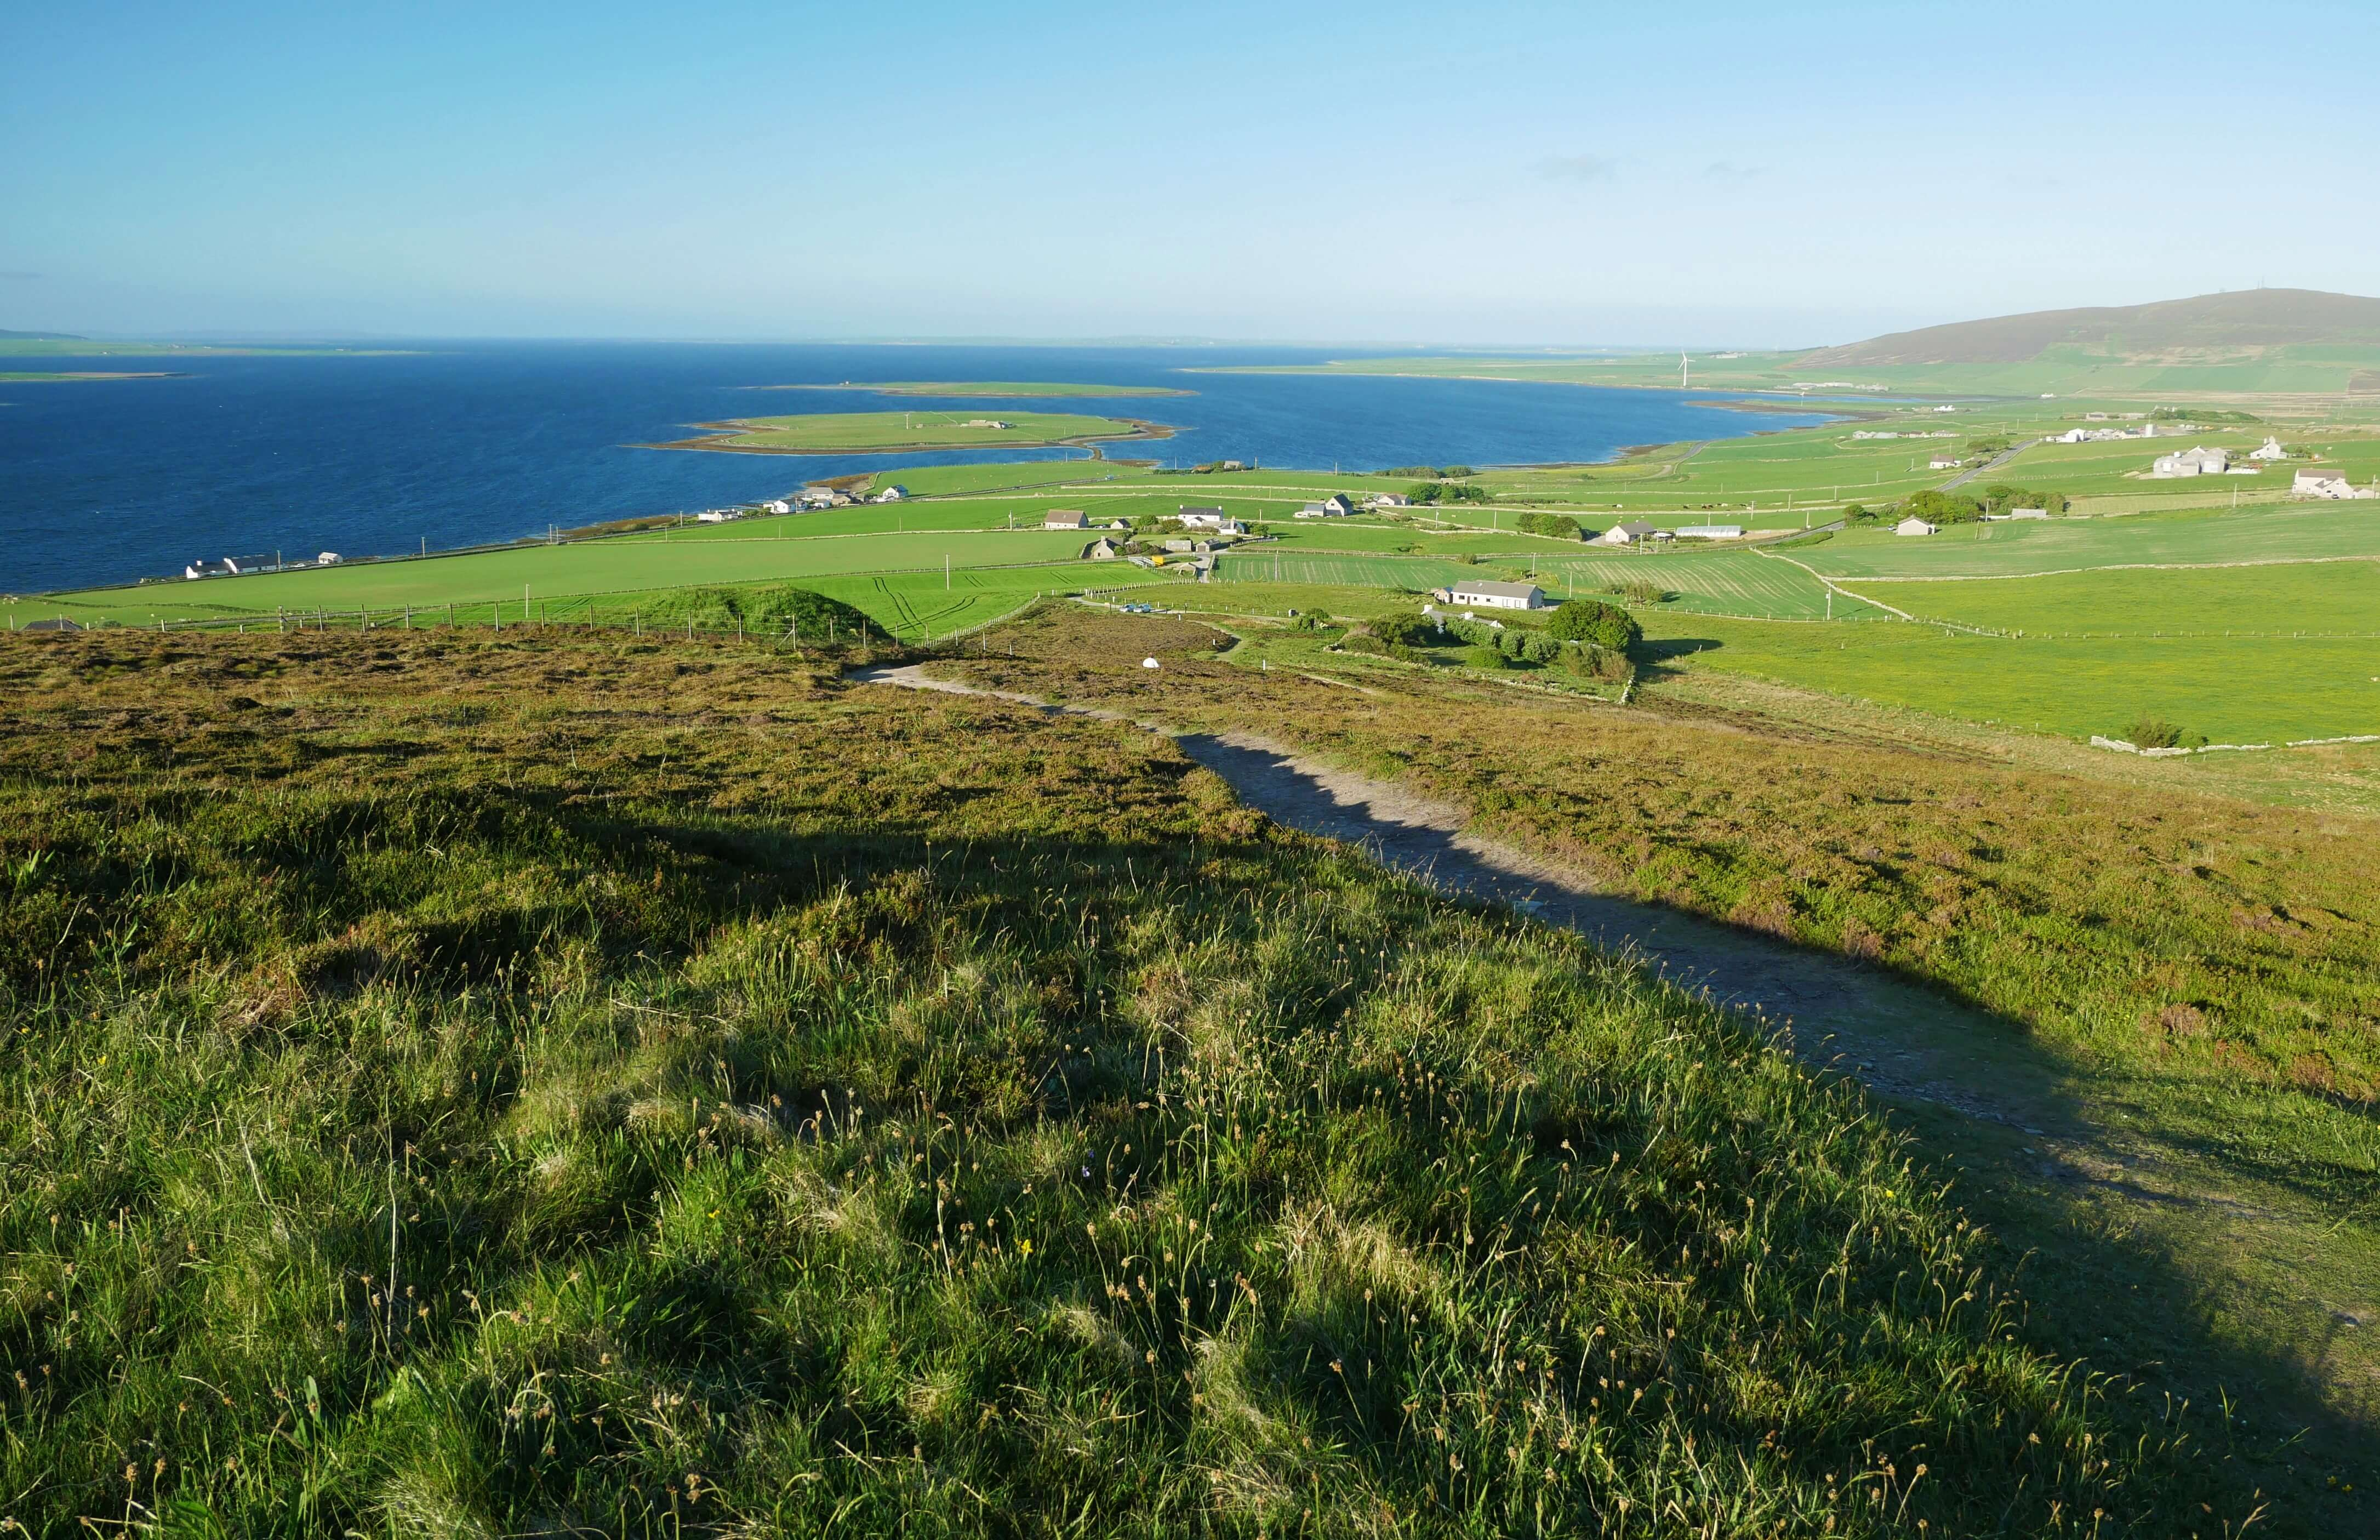 The view from the chambered cairn, Finstown, Orkney, Scotland